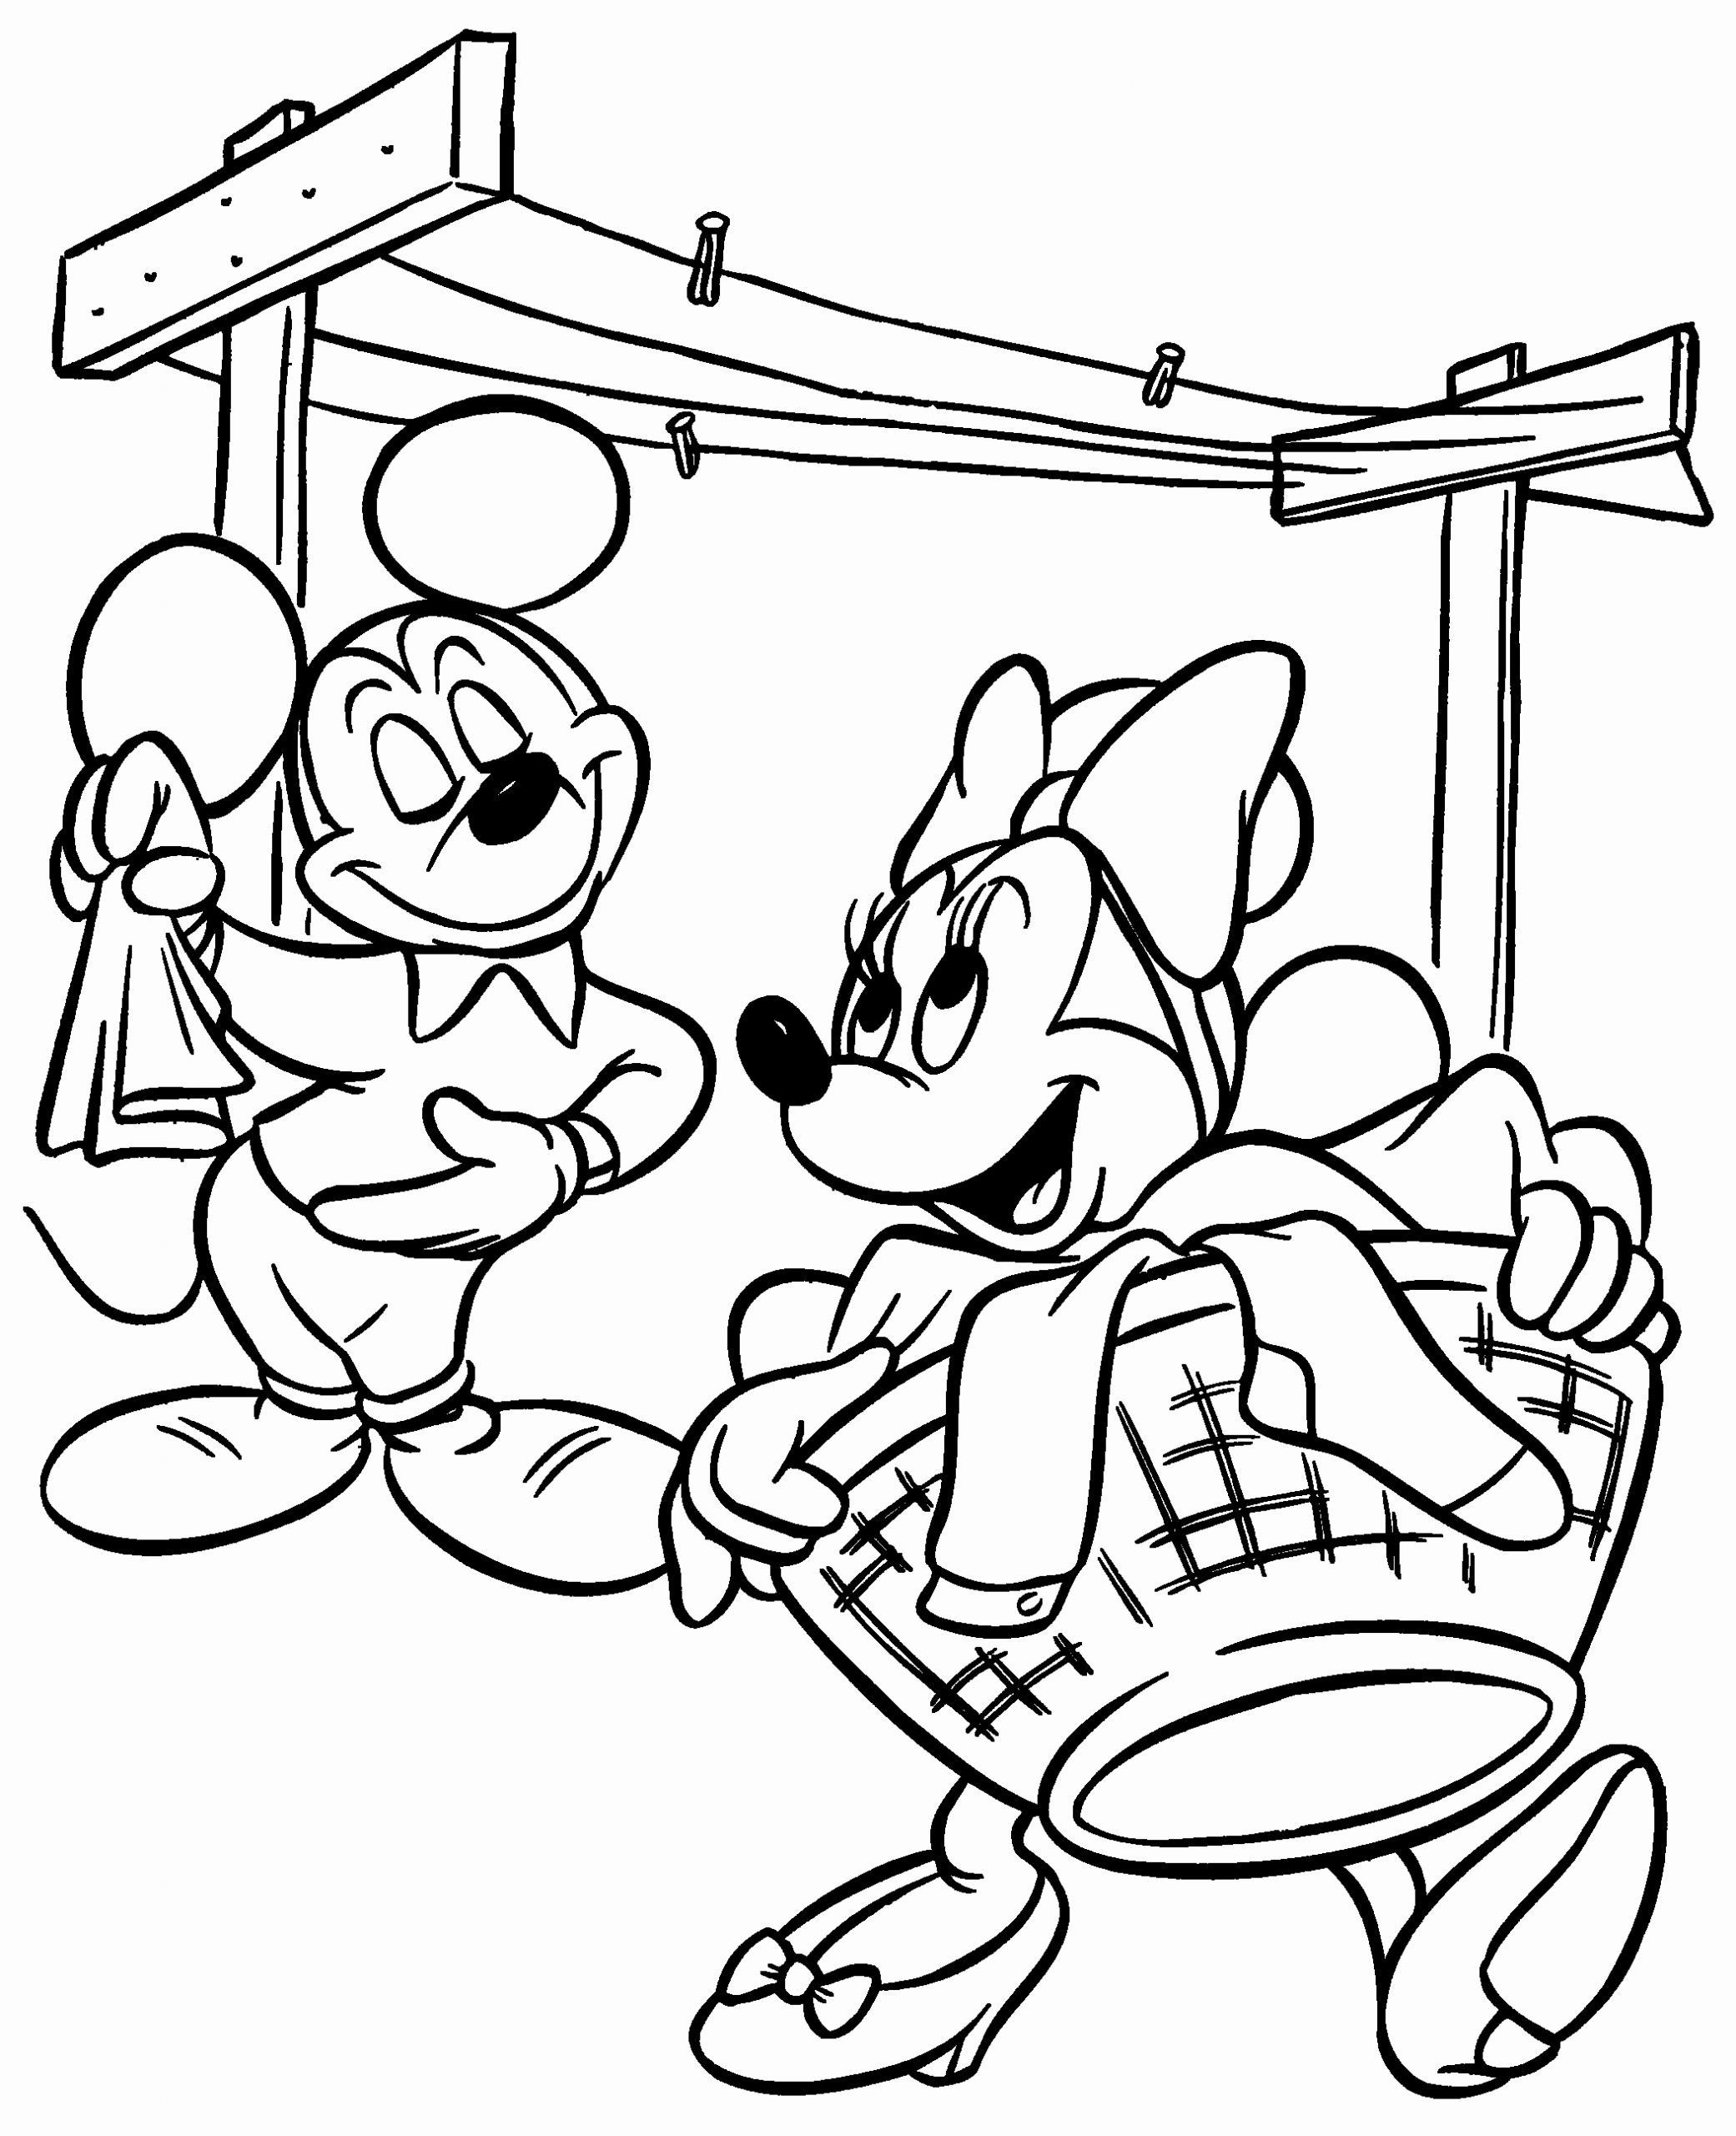 Cartoon Characters Coloring Pages Lovely Free Printable Cartoon Download Free Cl In 2020 Minnie Mouse Coloring Pages Mickey Mouse Coloring Pages Cartoon Coloring Pages